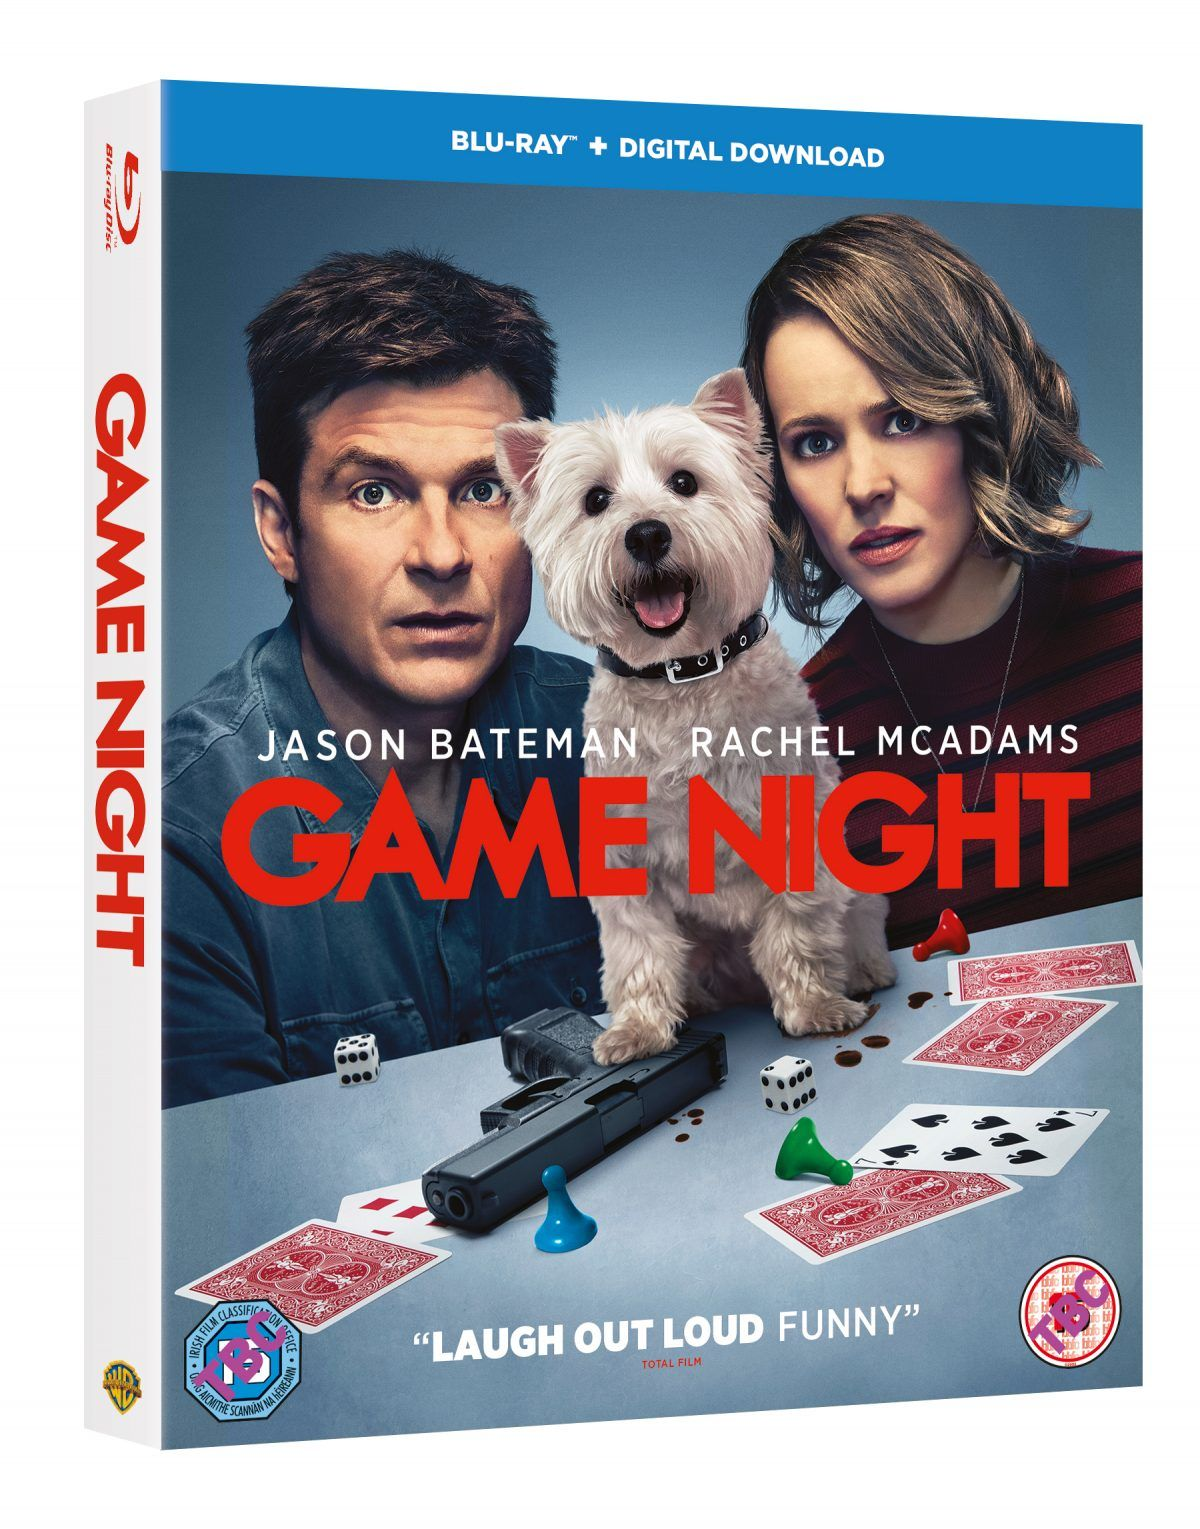 Game Night will have you laughing out very loud Review